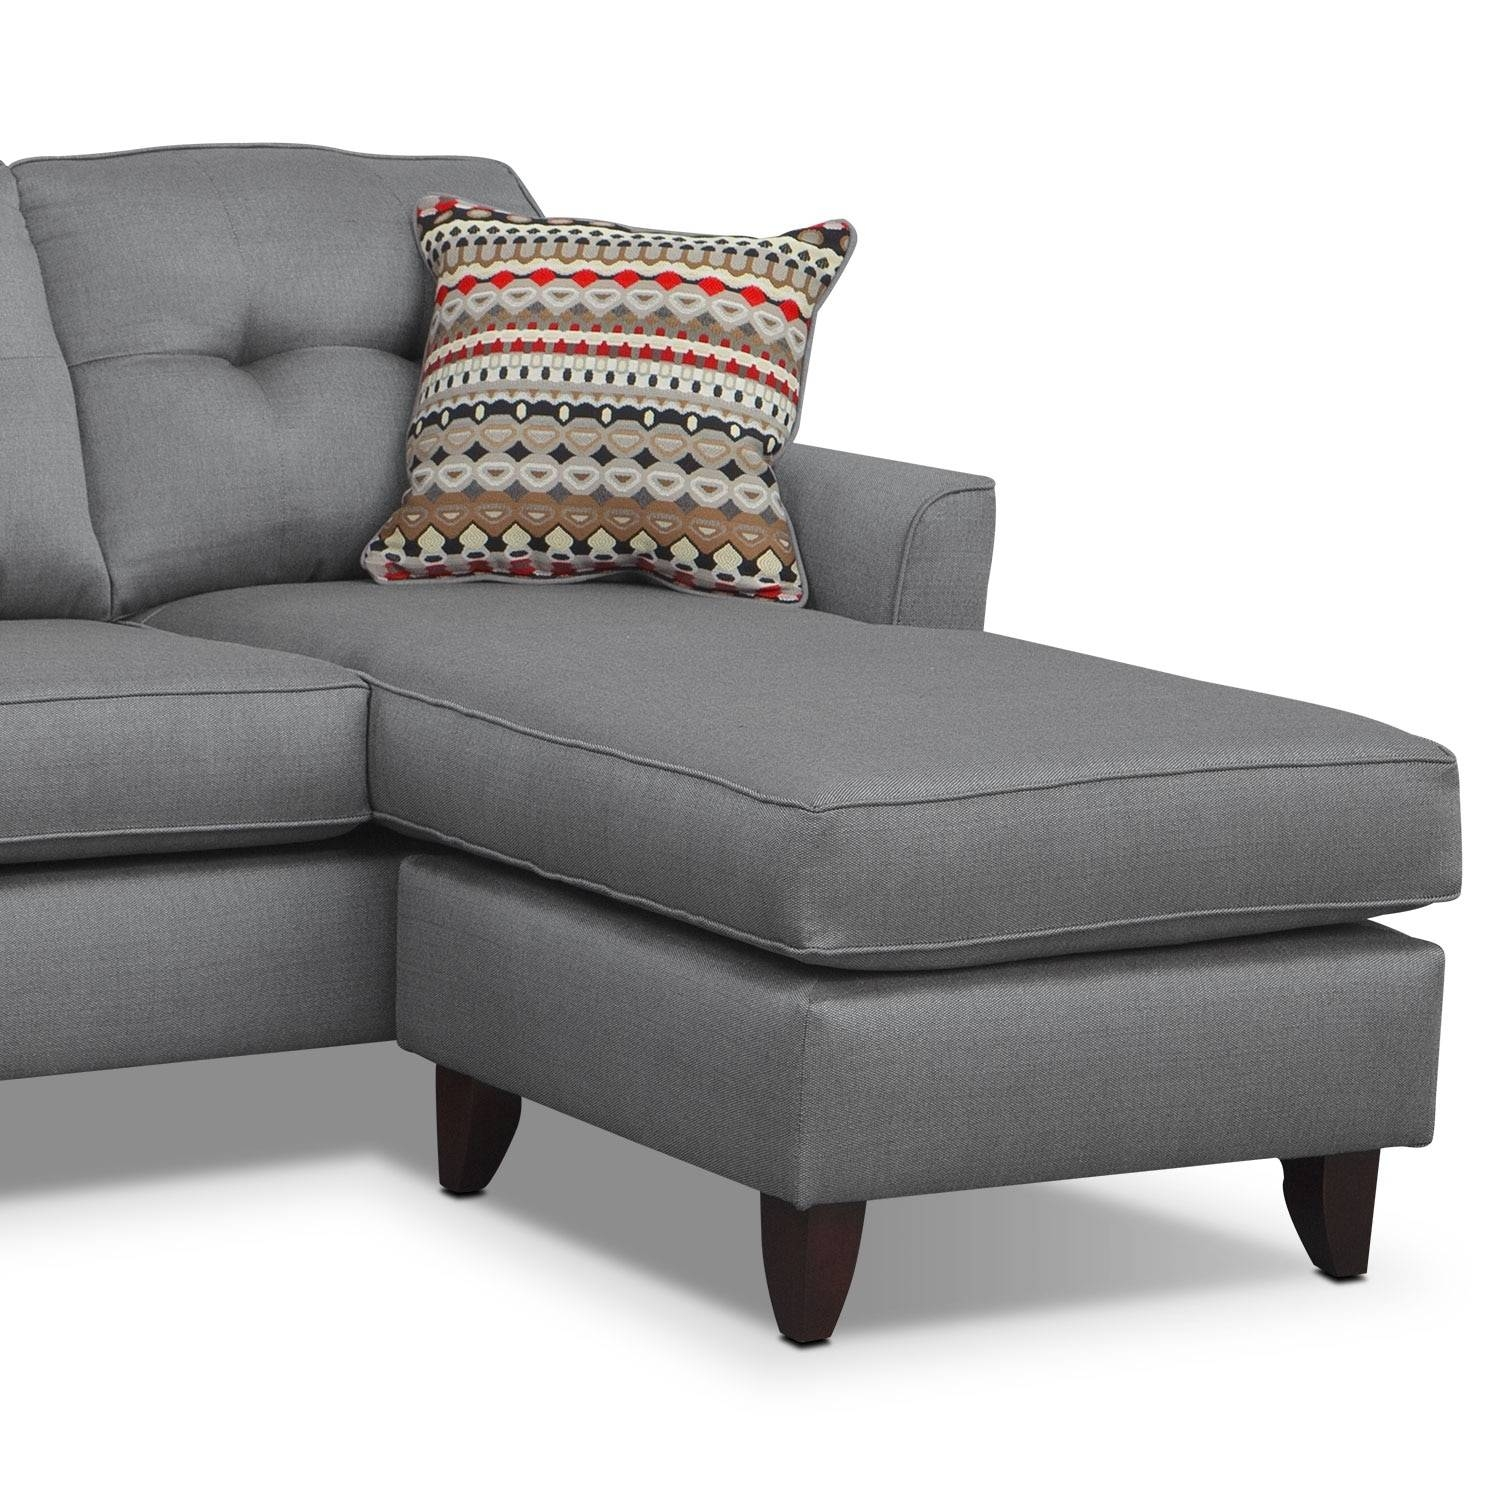 Marco Chaise Sofa - Gray | American Signature Furniture intended for Long Chaise Sofa (Image 15 of 25)